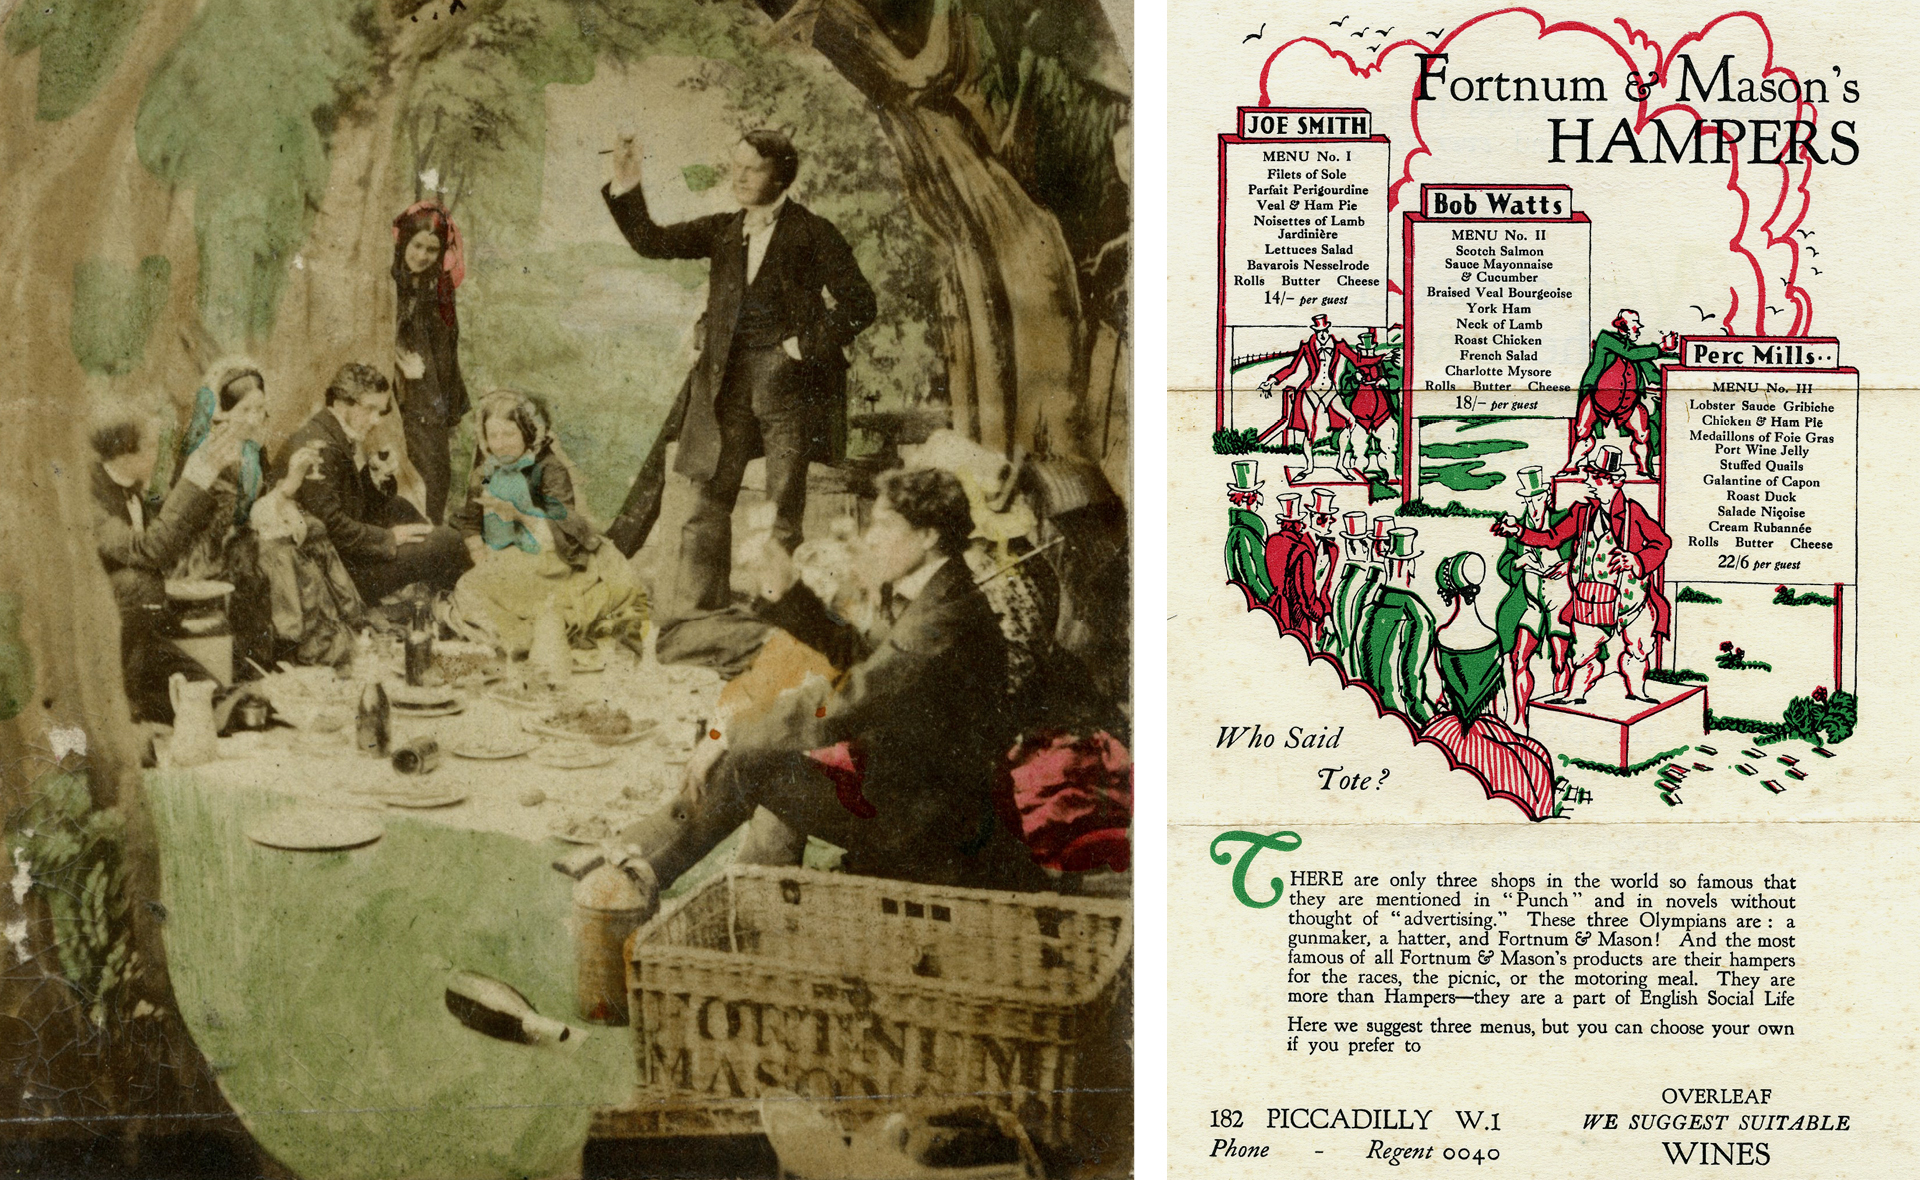 1866 illustration of a Victorian picnic with a Fortnum's hamper (left), archive image of a catalogue page about Fortnum's hampers from 1931 (right)